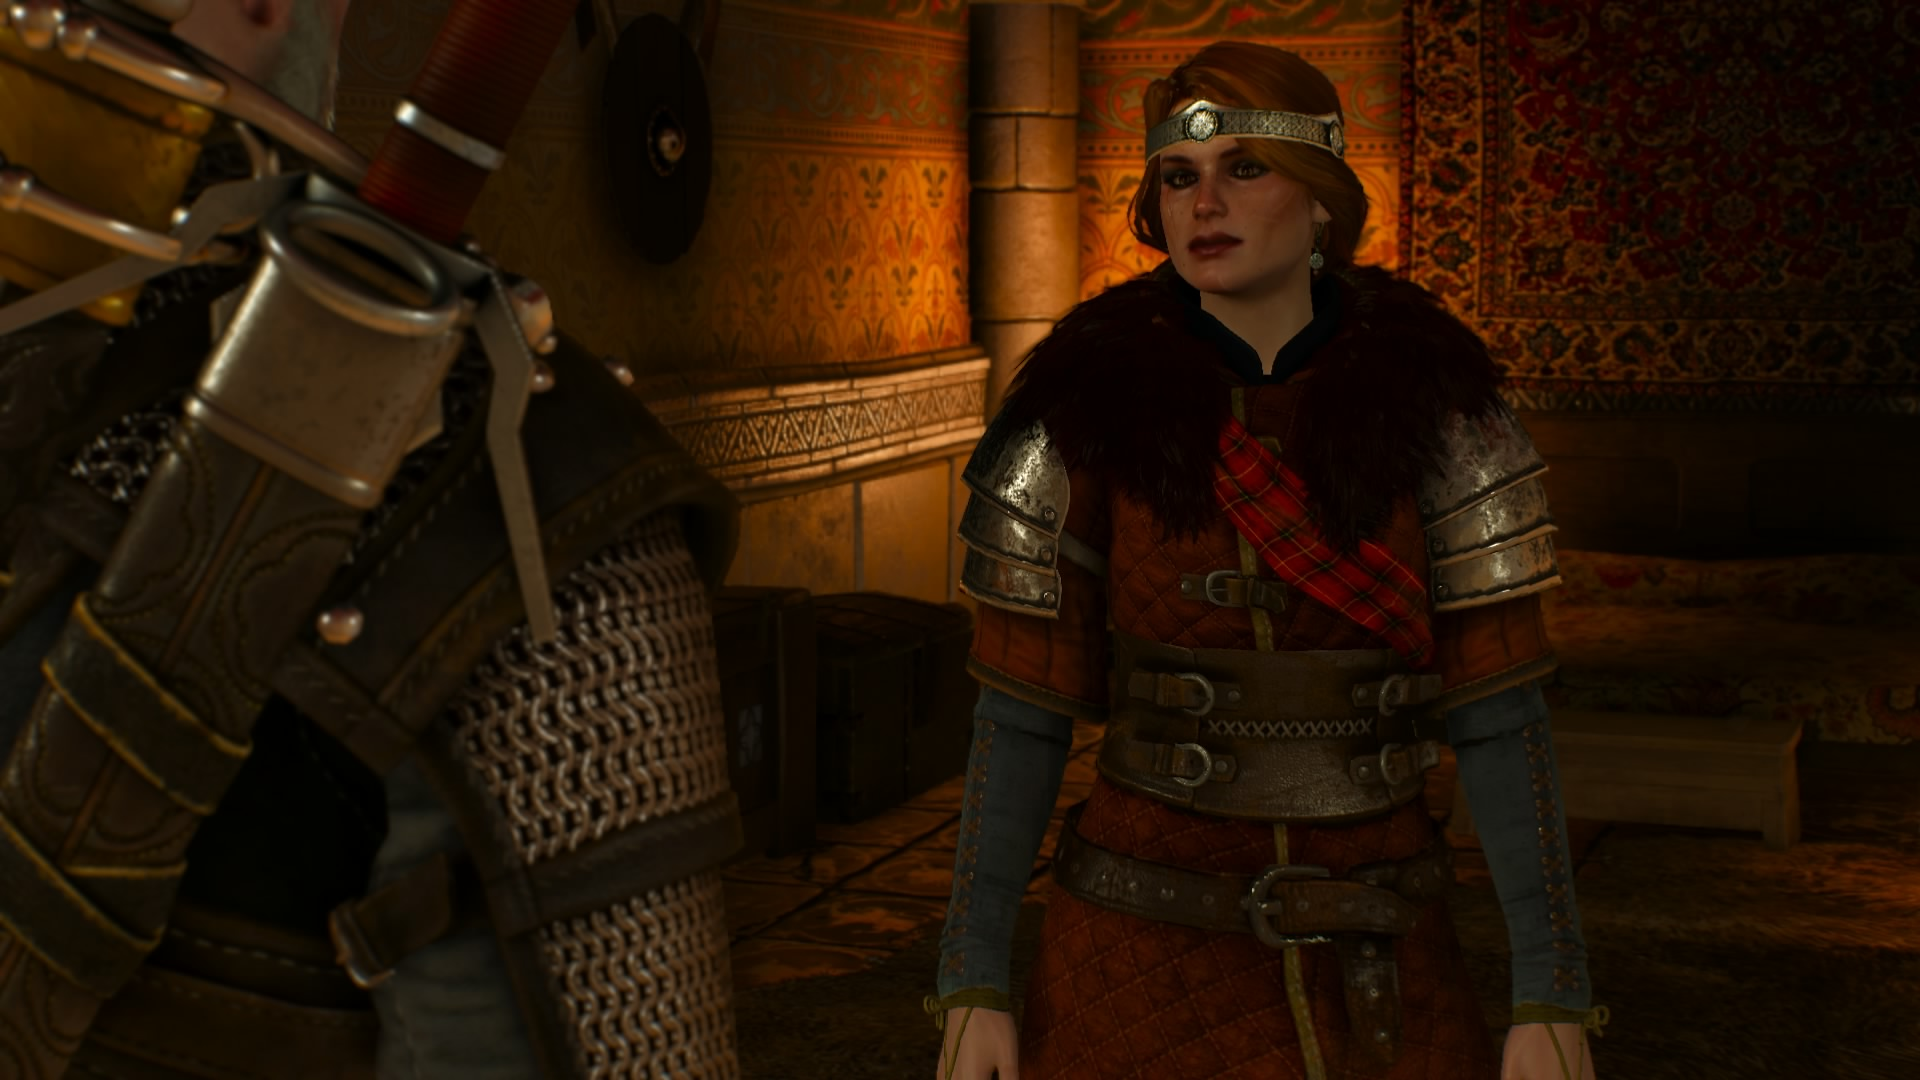 Cerys is a good example of the Skellige look, and has one of the stronger costumes in the game.